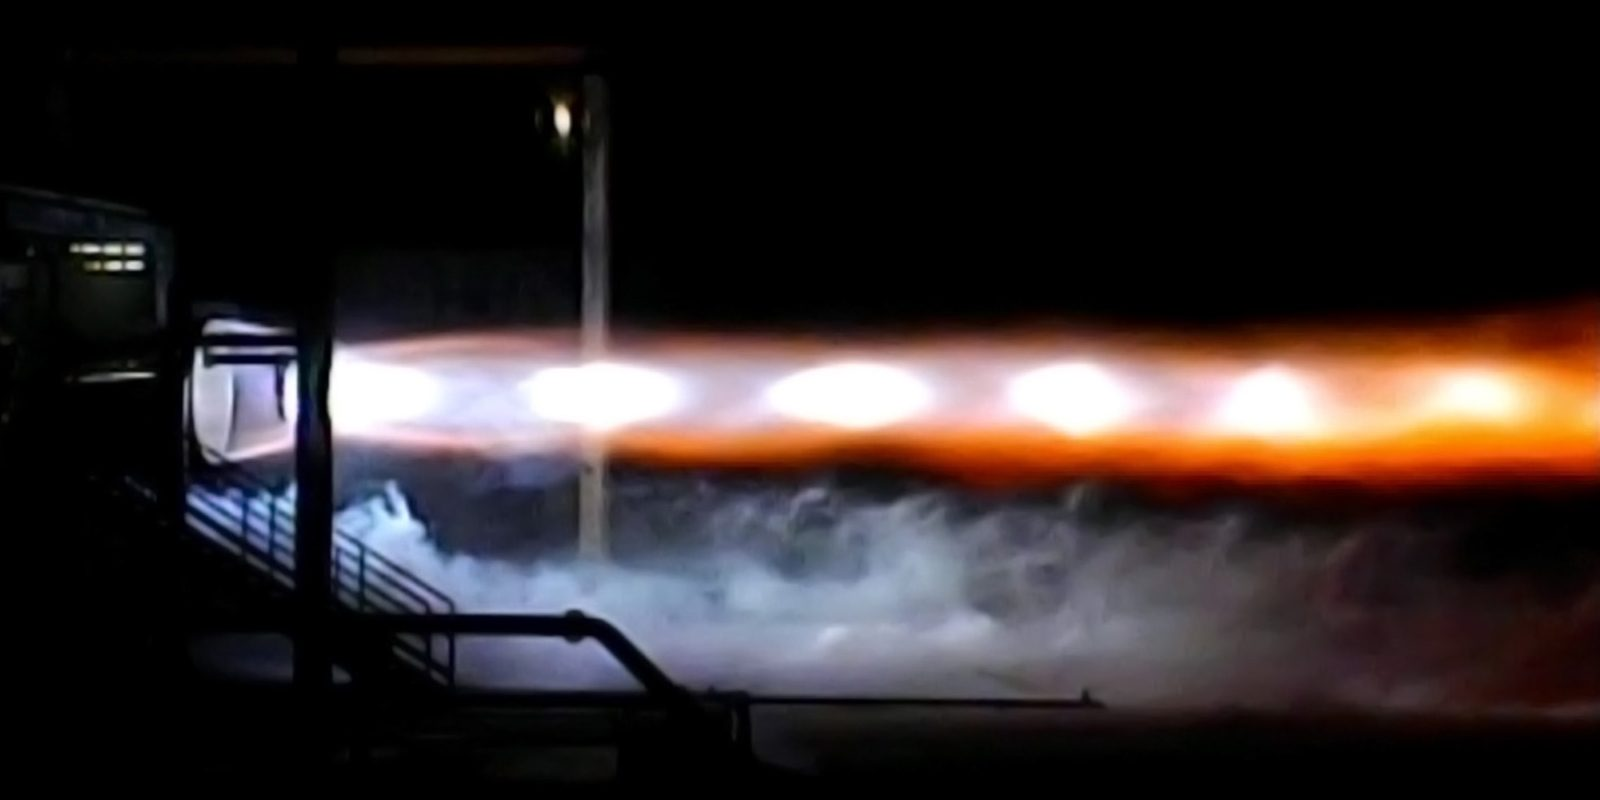 BE-4 engine hot-fire test